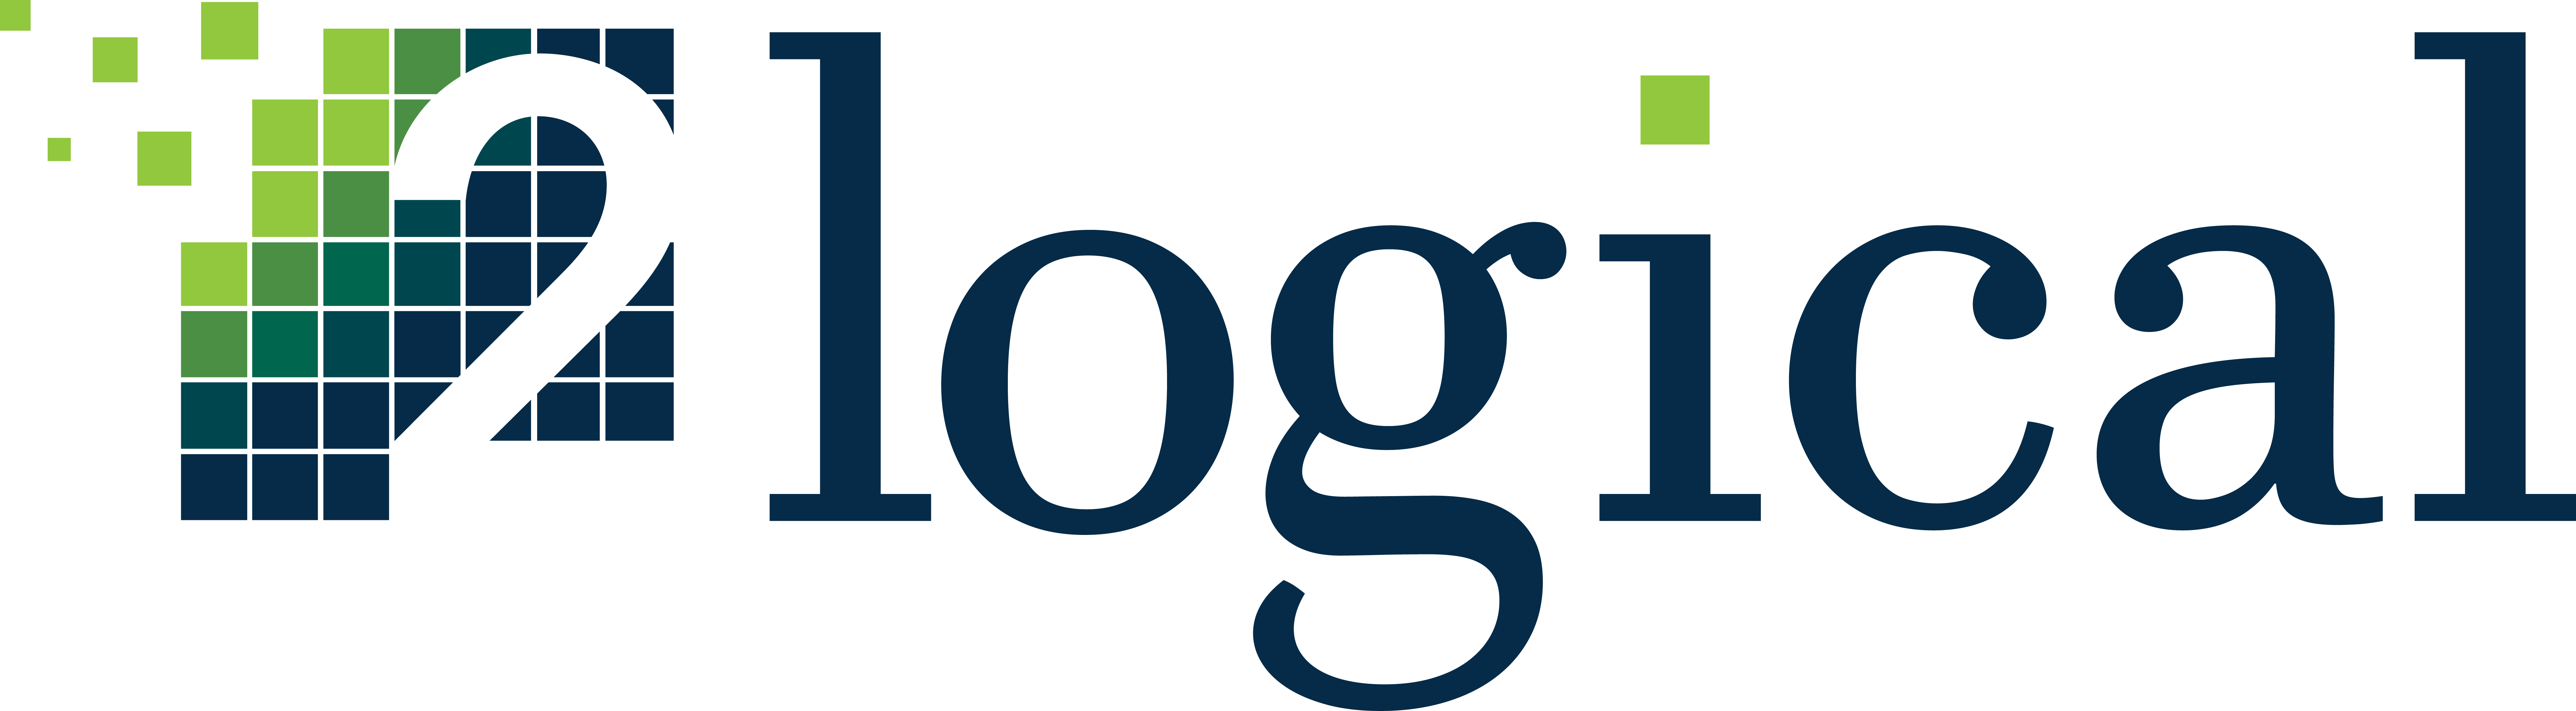 2logical welcomes U.K.-based The Power Within as its newest member of the Global Partner Program